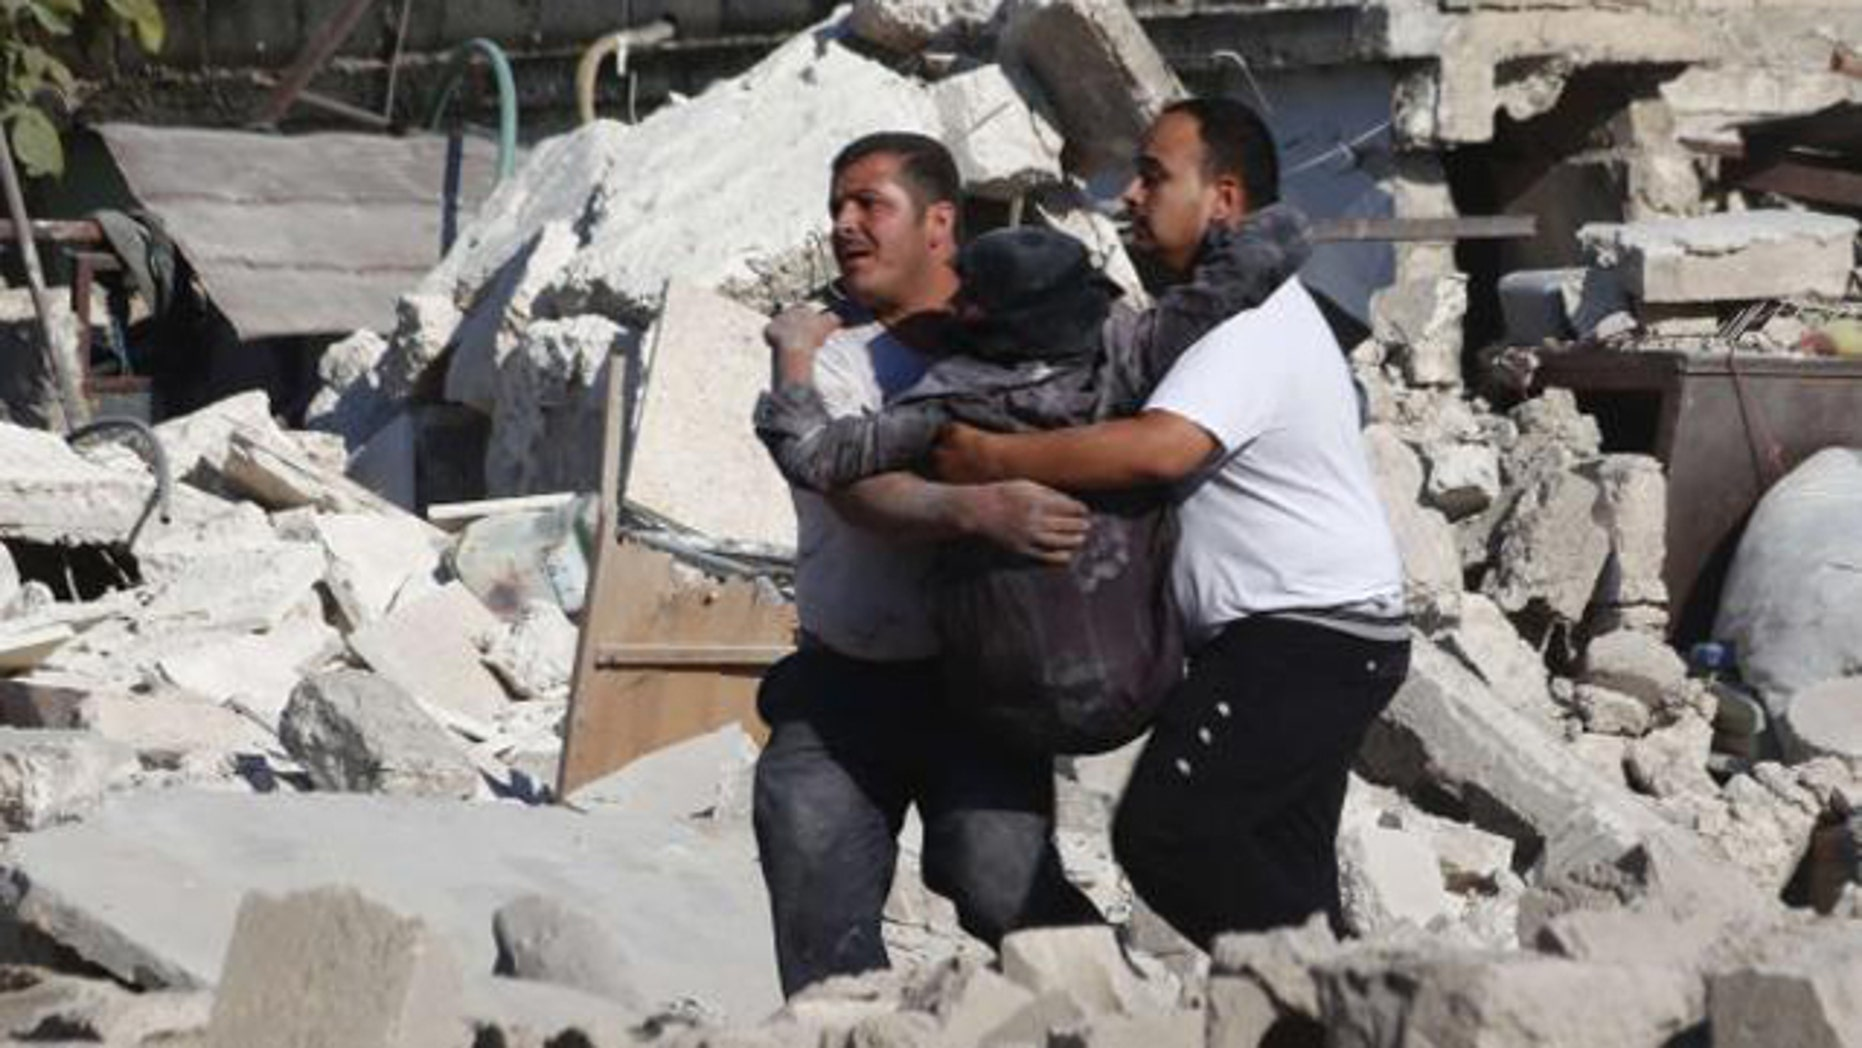 August 11, 2014: Men carry a wounded woman at a site hit by what activists said was a missile fired by forces loyal to Syria's President Bashar al-Assad at Aleppo's Bab al-Nairab district. (REUTERS/Rami Zayat)